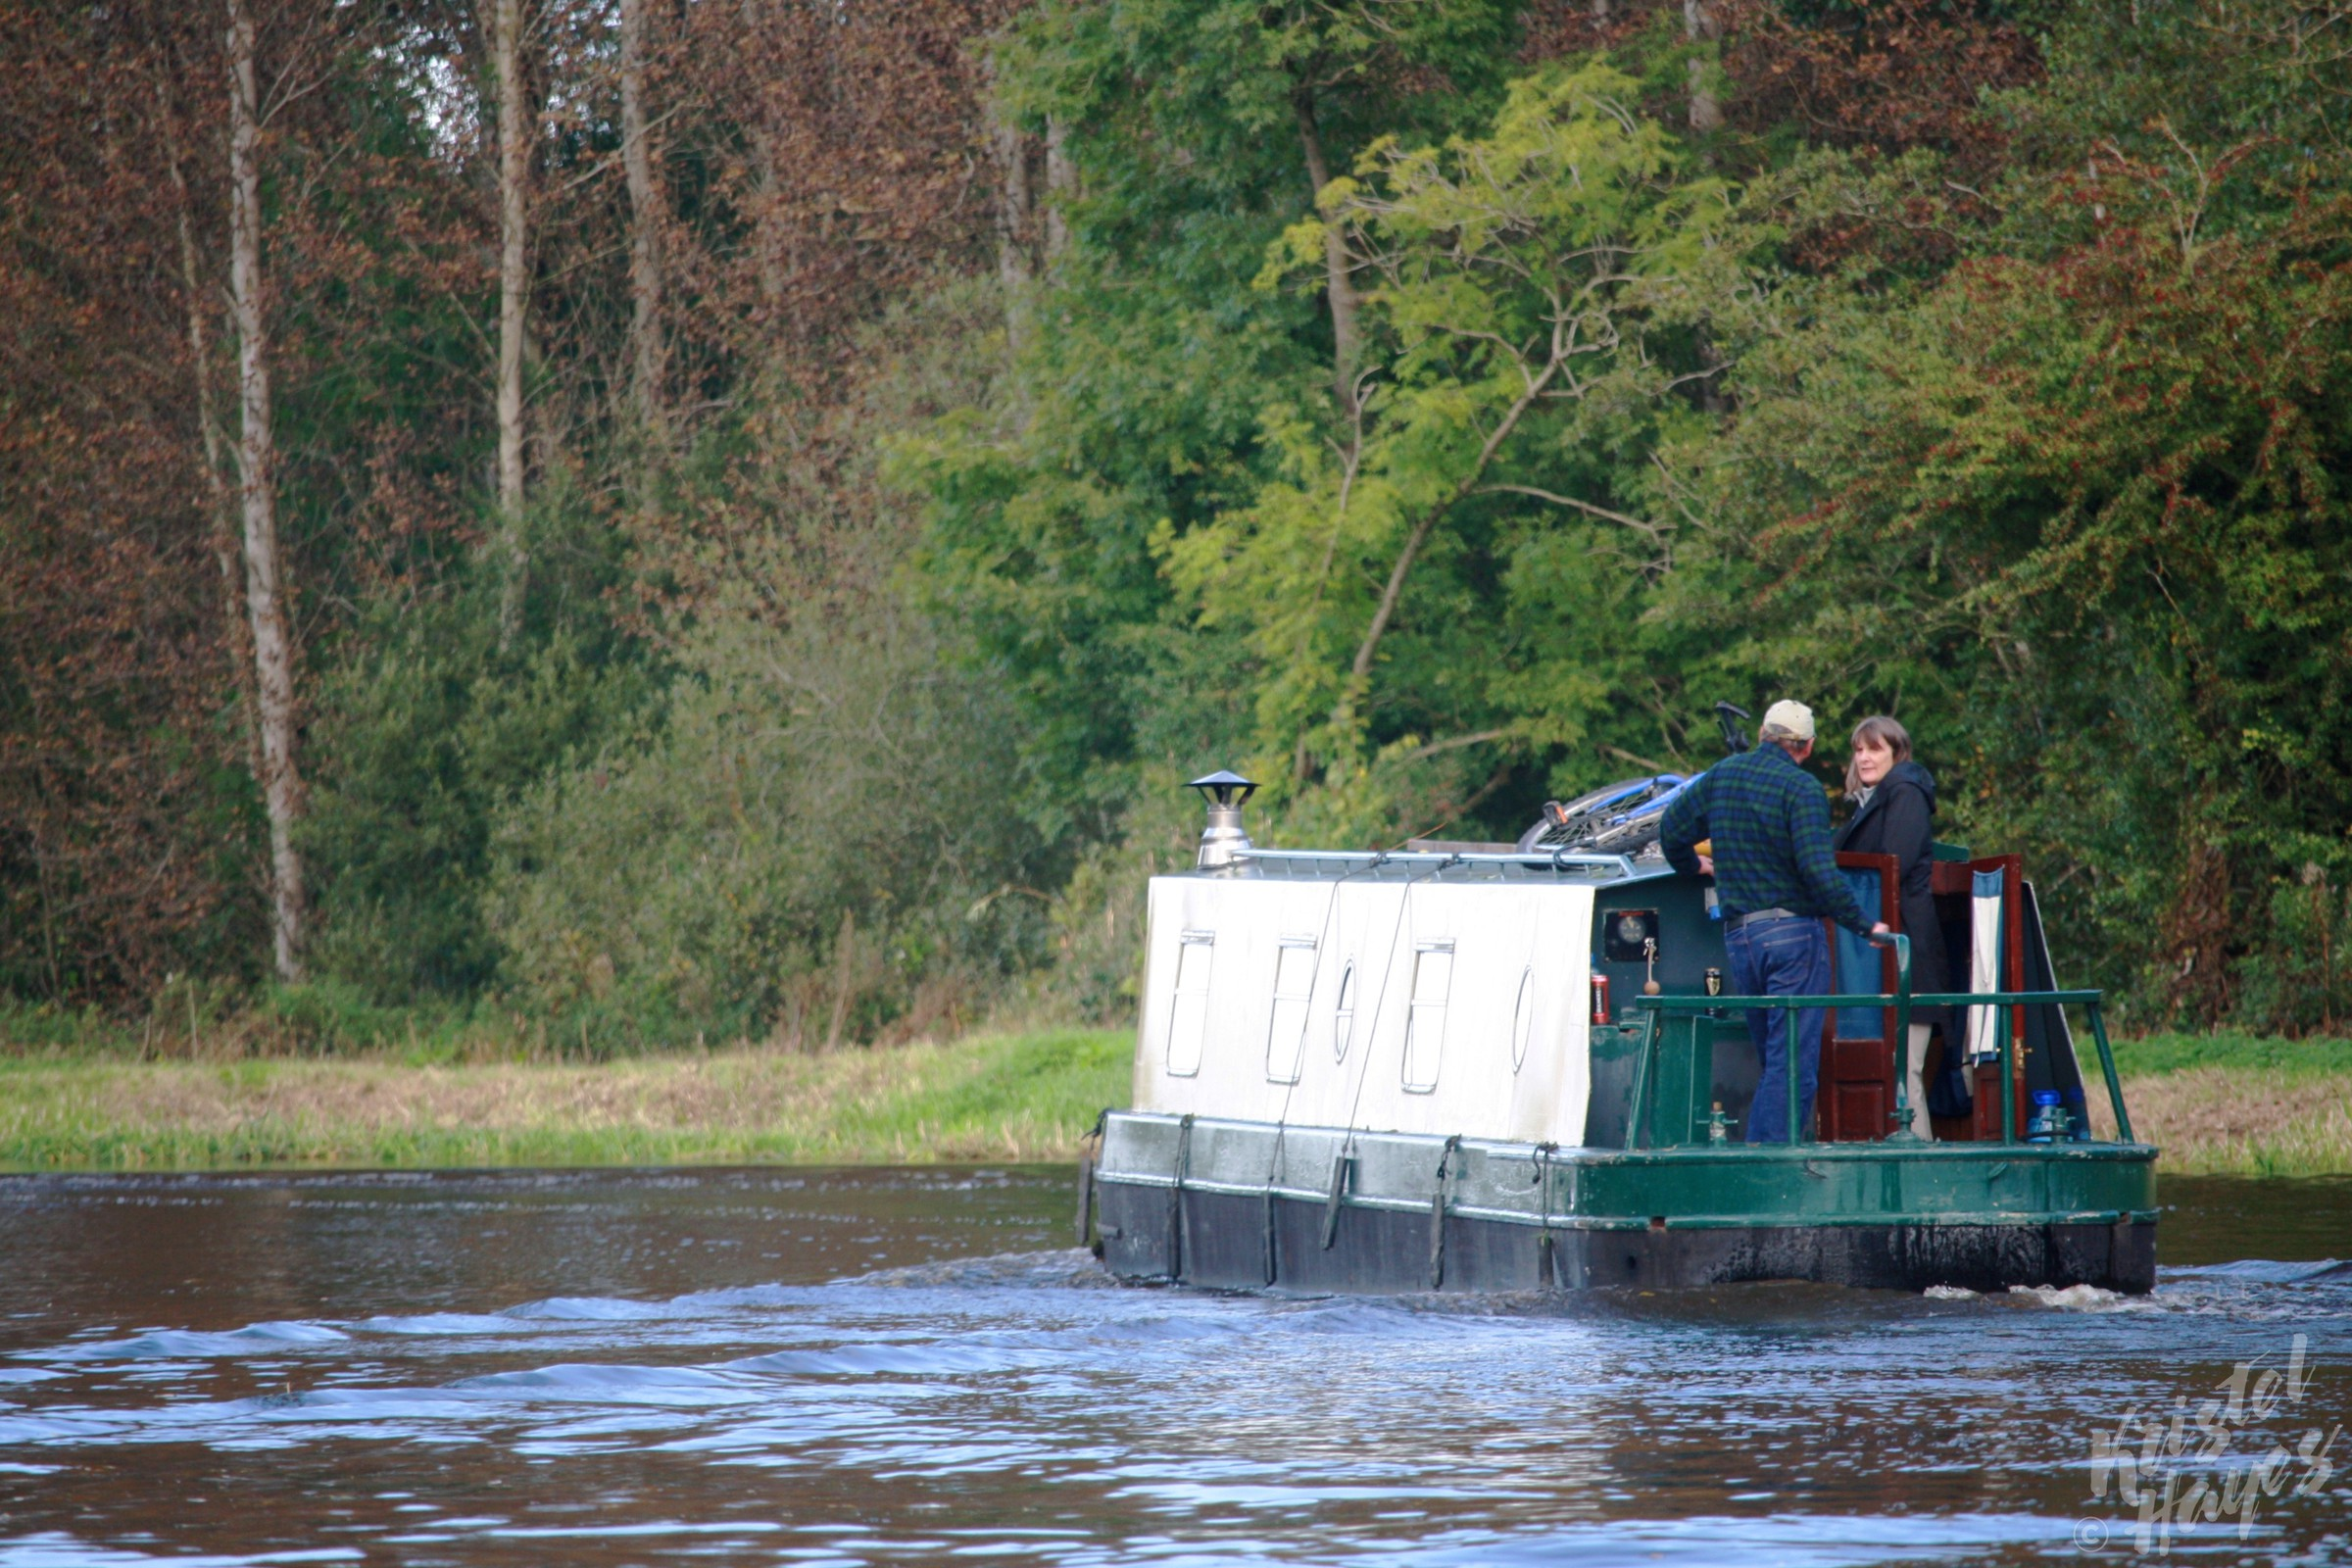 Kurt & Jen's Narrow Boat-River Barrow, Ireland